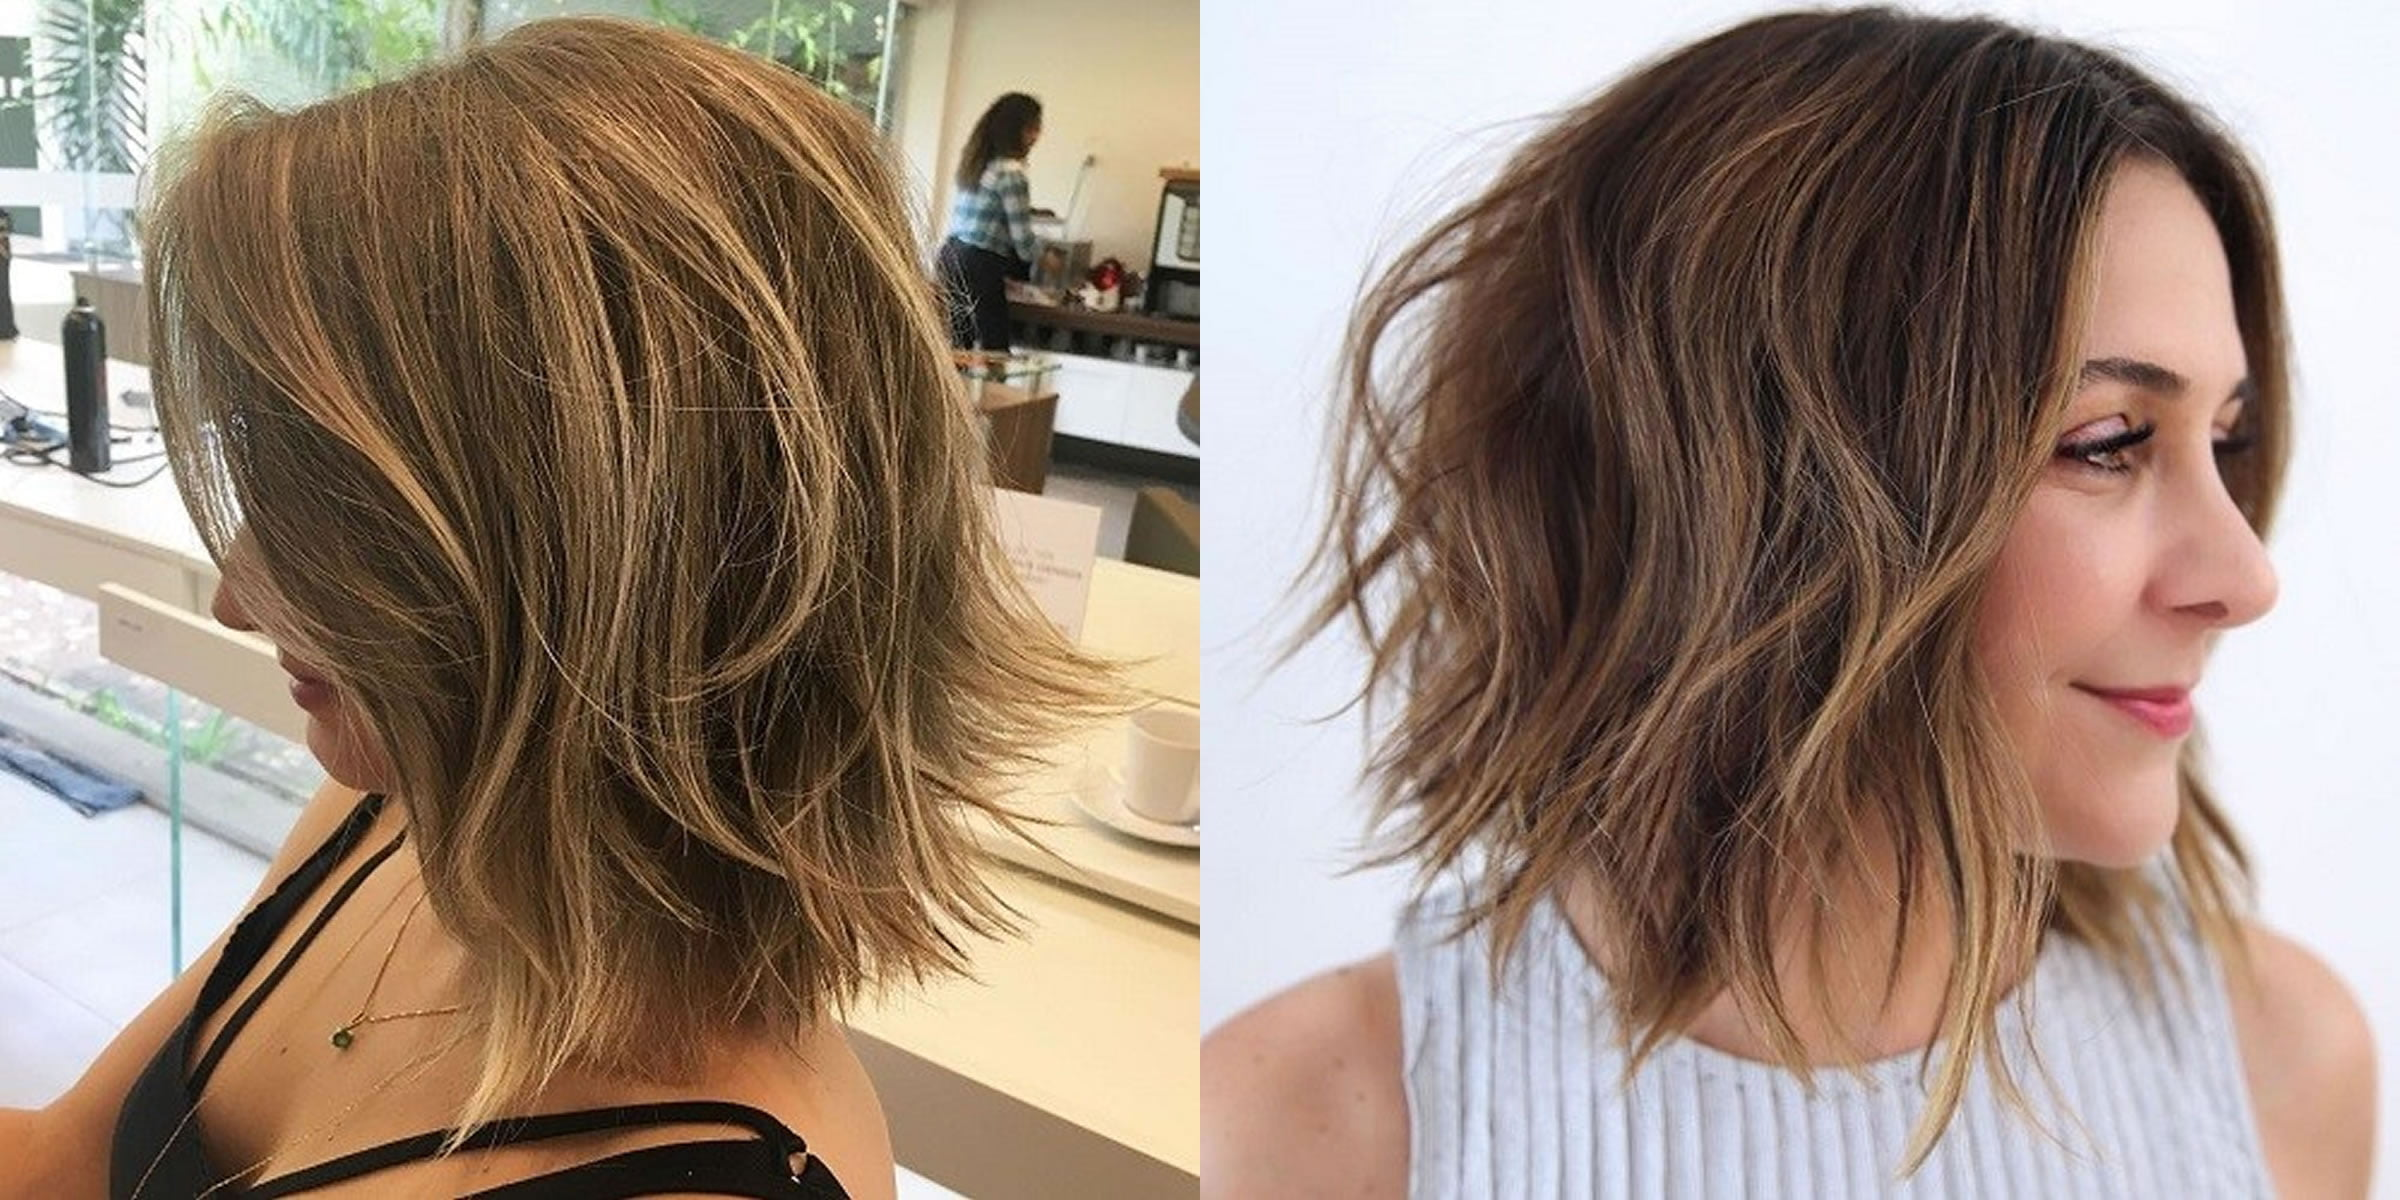 Hairstyles 2019: Layered Long Bob Haircuts For Women 2019